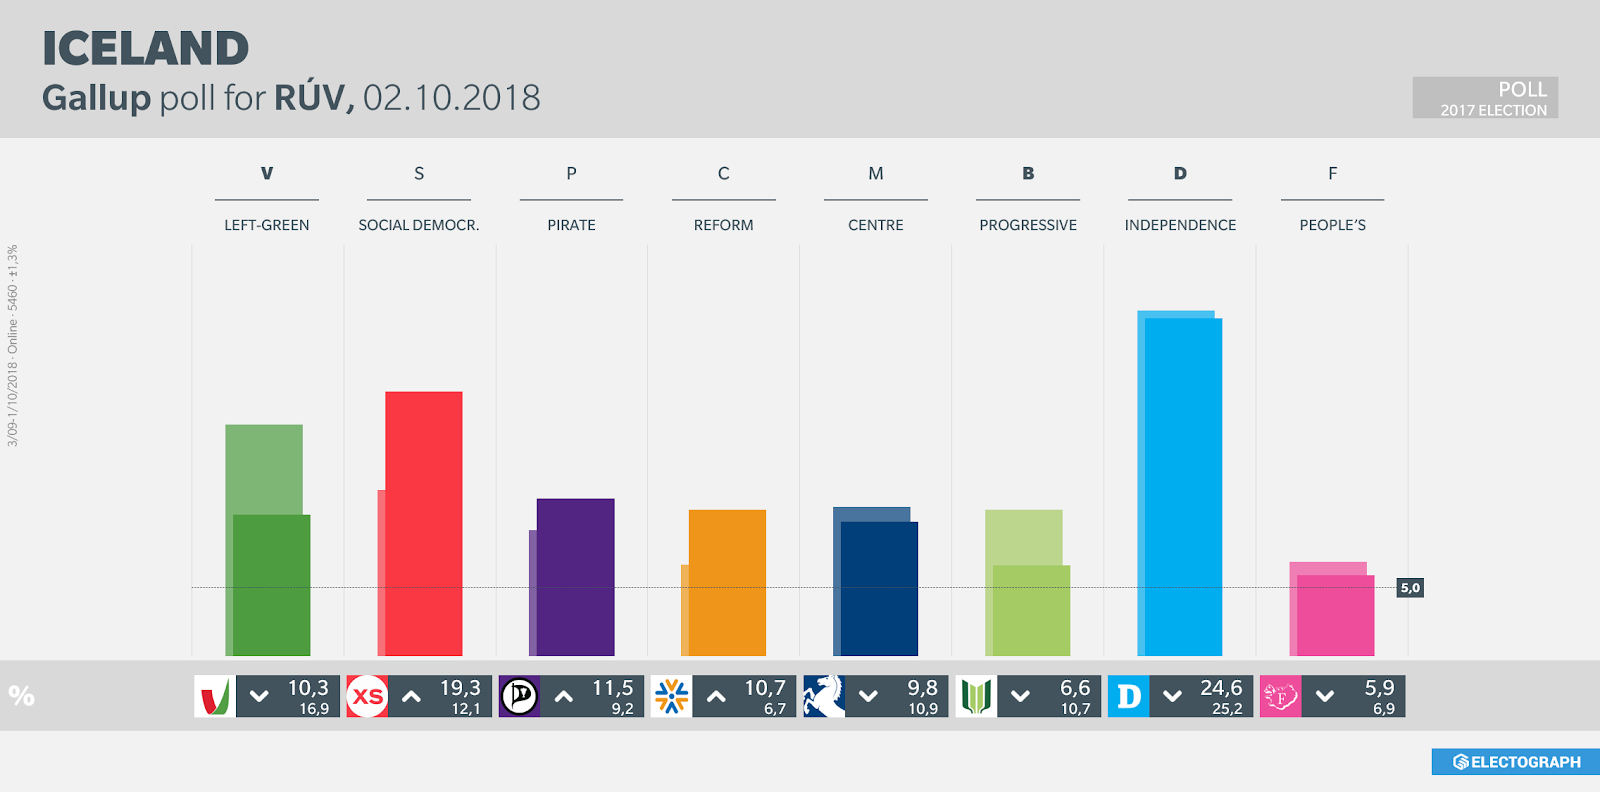 ICELAND: Gallup poll chart for RÚV, October 2018